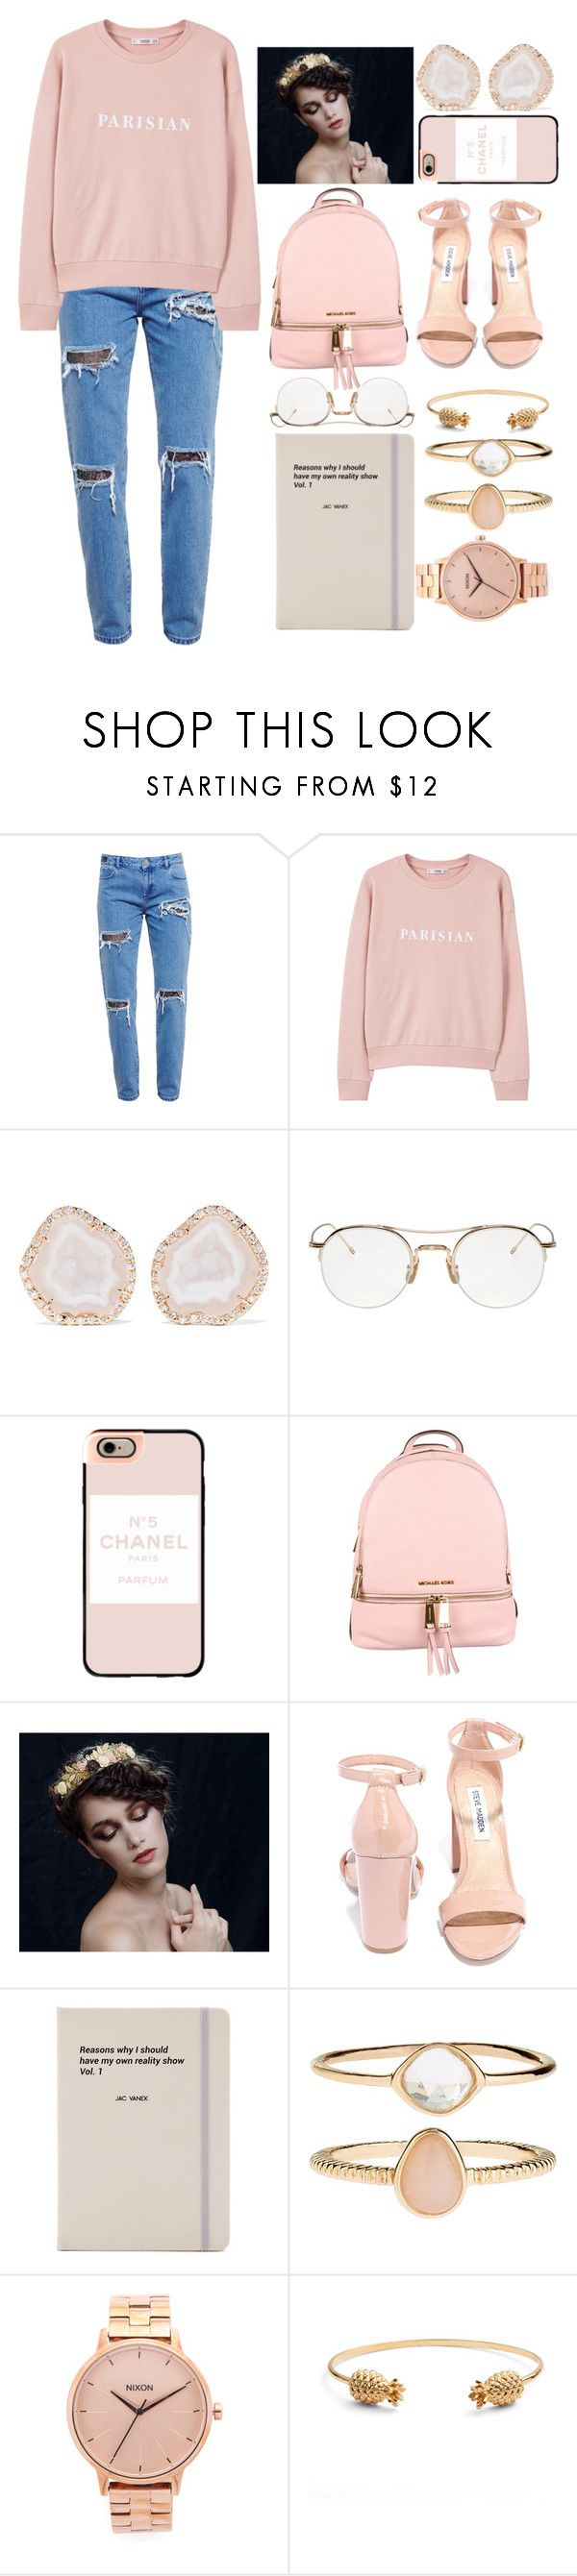 """no sleeping in on Sunday"" by polysetter-862 ❤ liked on Polyvore featuring House of Holland, MANGO, Kimberly McDonald, Thom Browne, Casetify, MICHAEL Michael Kors, Steve Madden, Jac Vanek, Accessorize and Nixon"